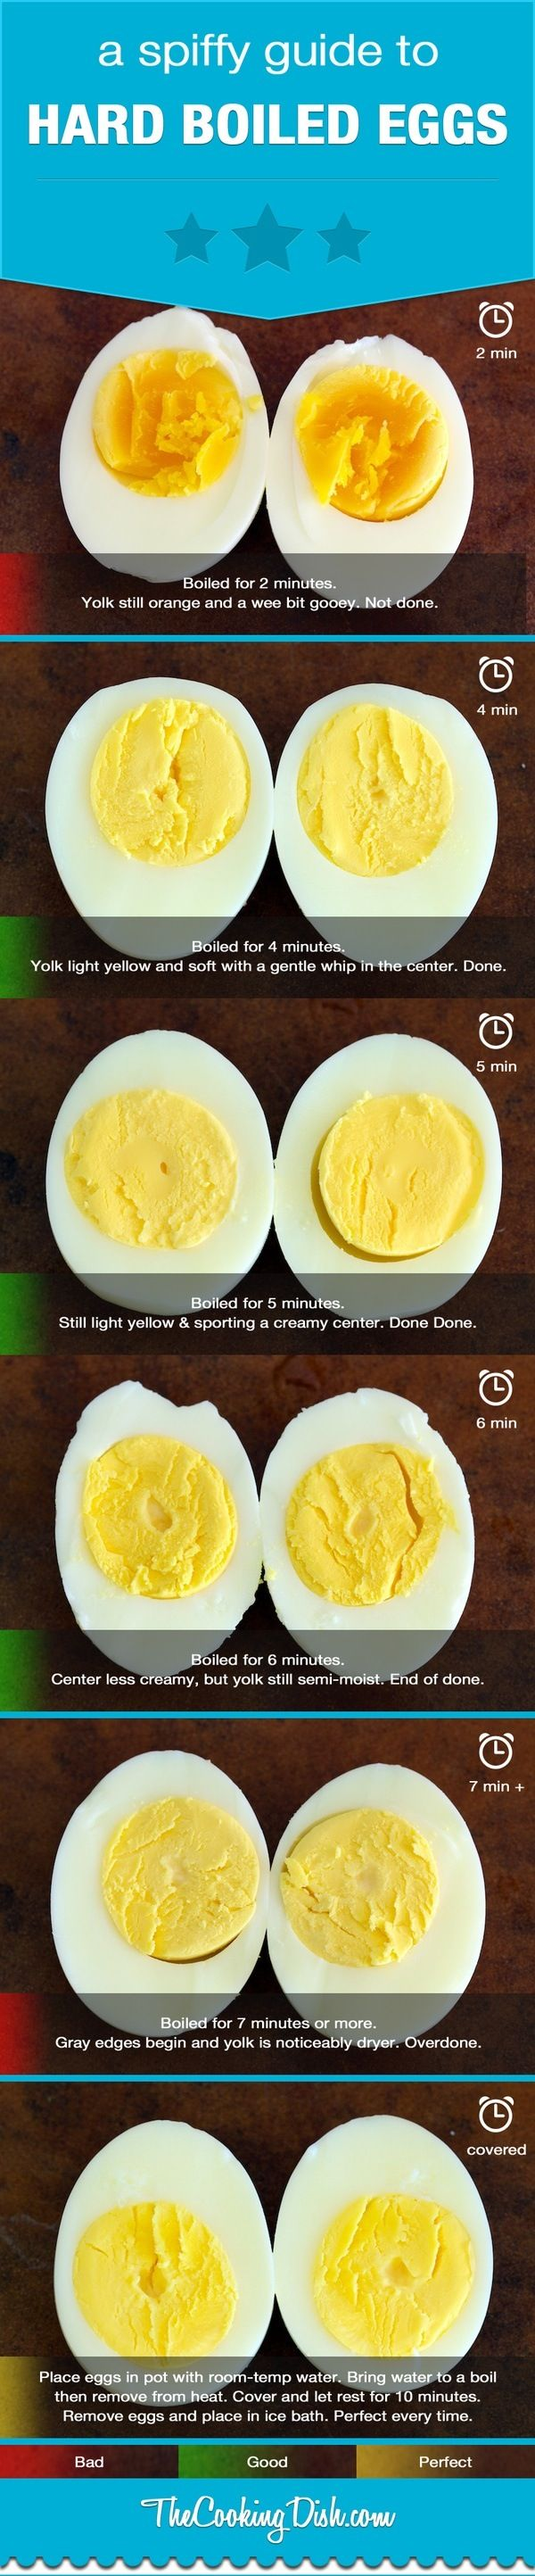 Eat eggs! They're good for you! a guide to hardboiled eggs